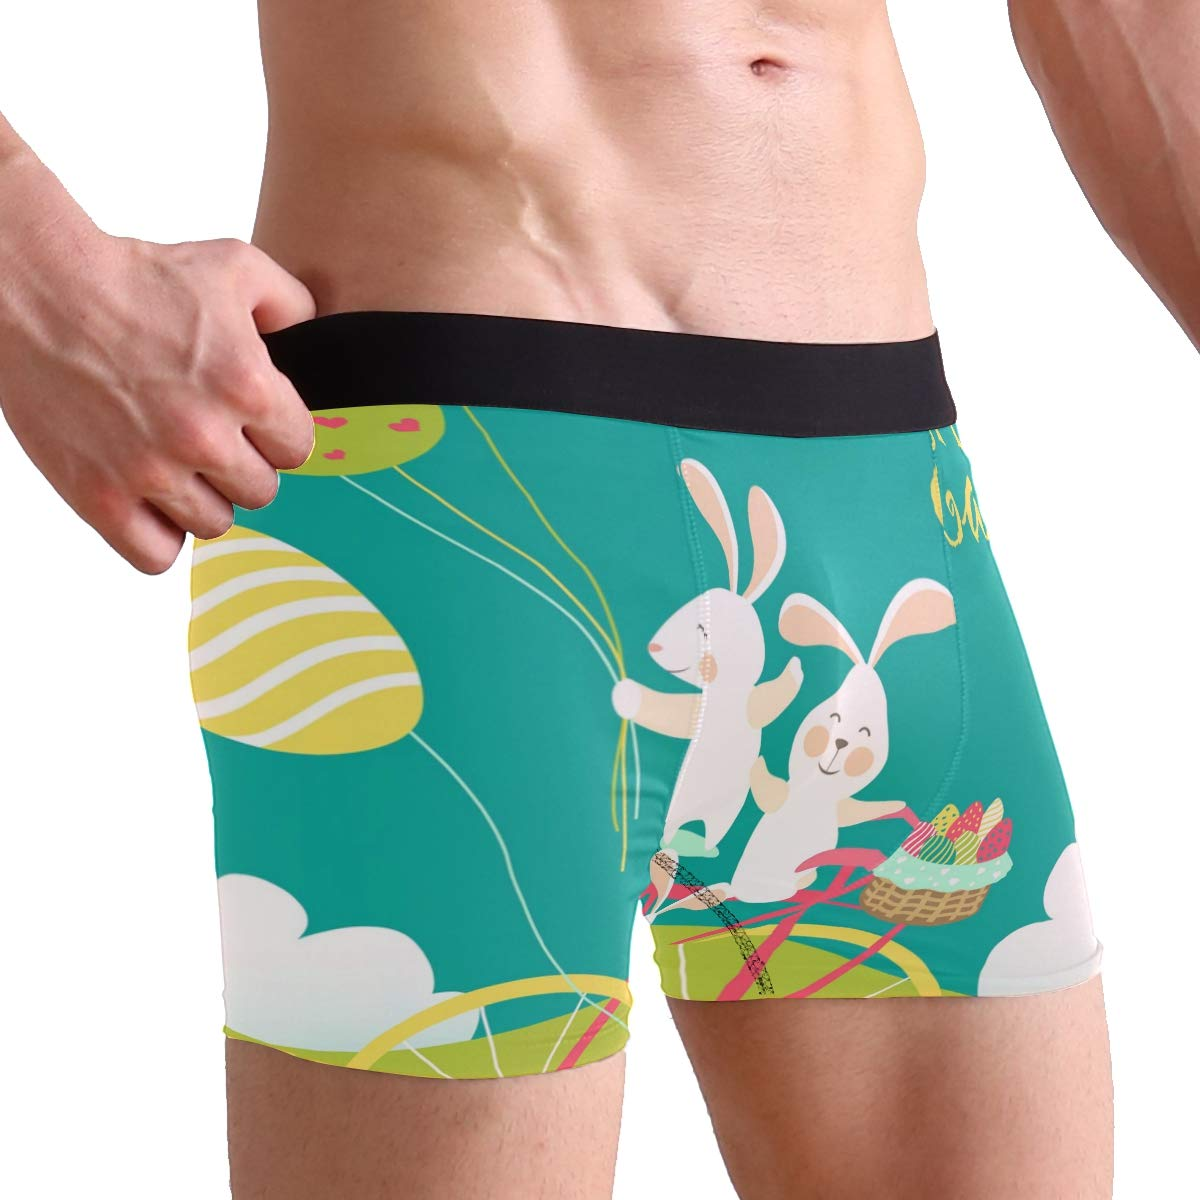 SUABO Men Boxer Briefs Polyester Underwear Men 2 Pack Boxer Briefs with Easter Bunnies Pattern